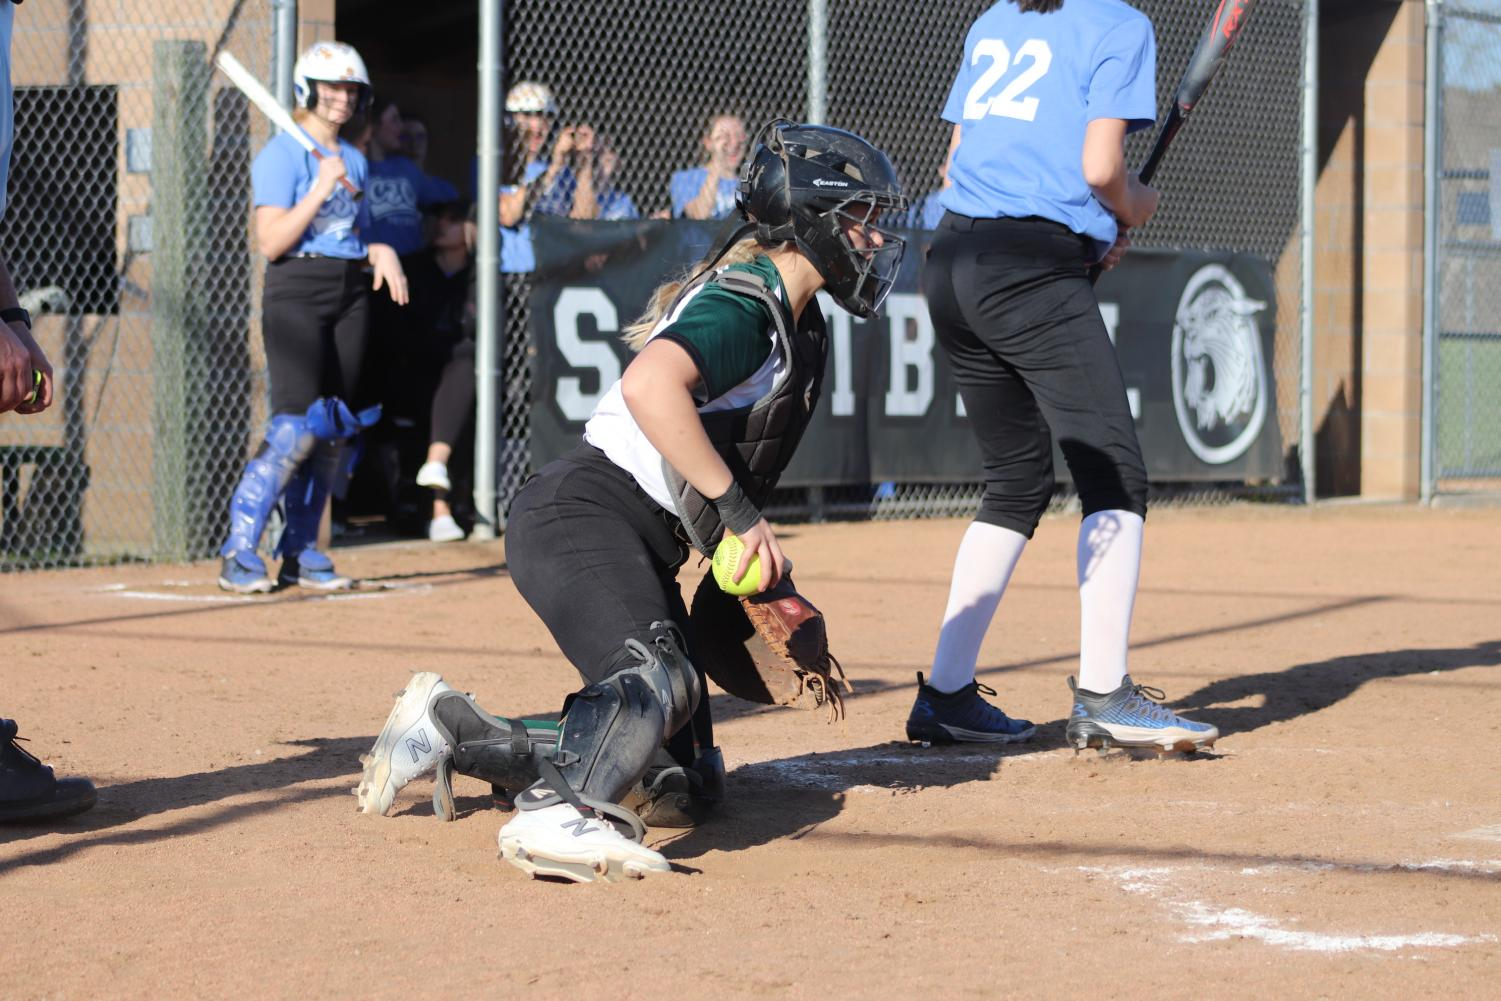 Junior catcher Taylor Howe prepares to throw the ball back during the softball game against Climax Springs on March 29. Warsaw won with a score of 15-0.